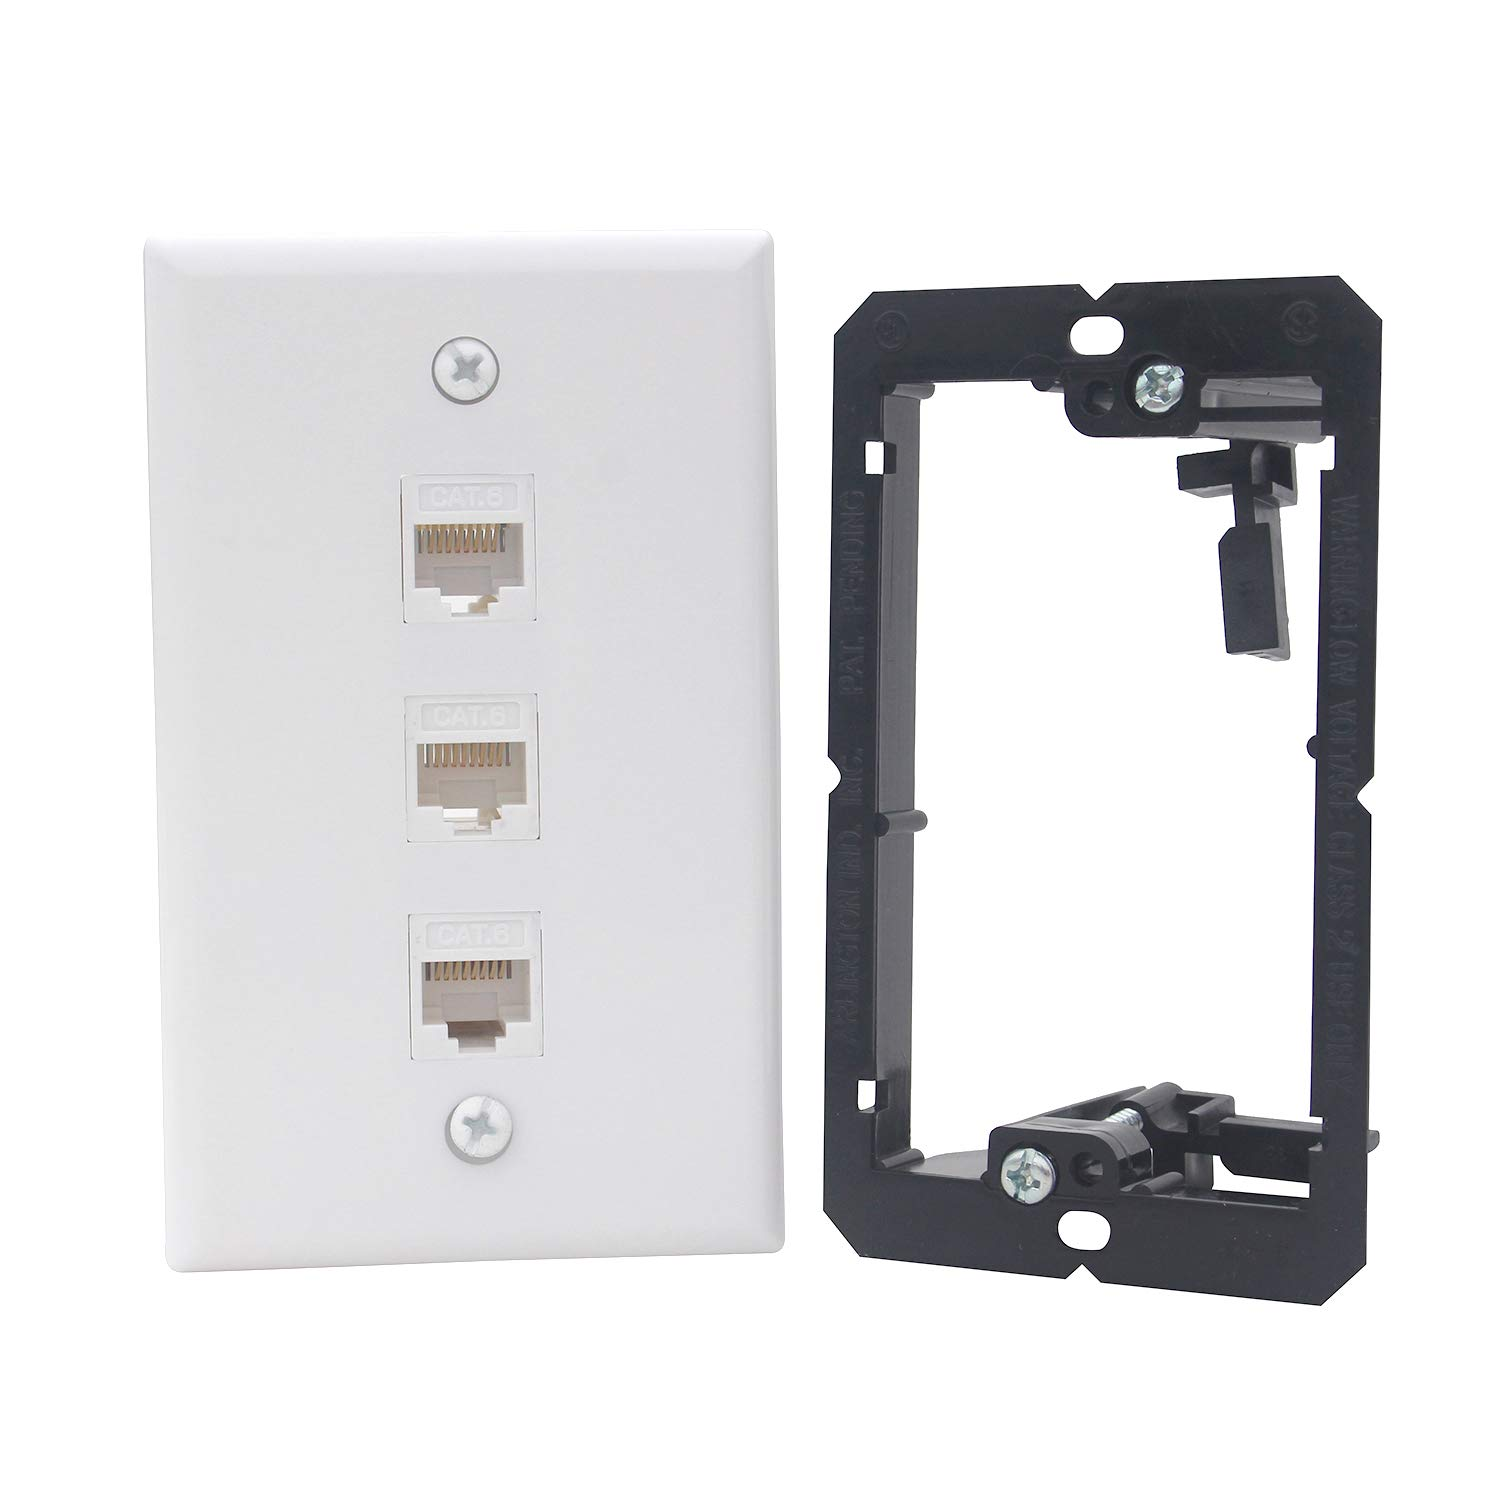 KCC Industries 3-Port Cat6 Ethernet Cable Wall Plate | Female-Female with Mounting Bracket +UL/CSA Listed Safe+